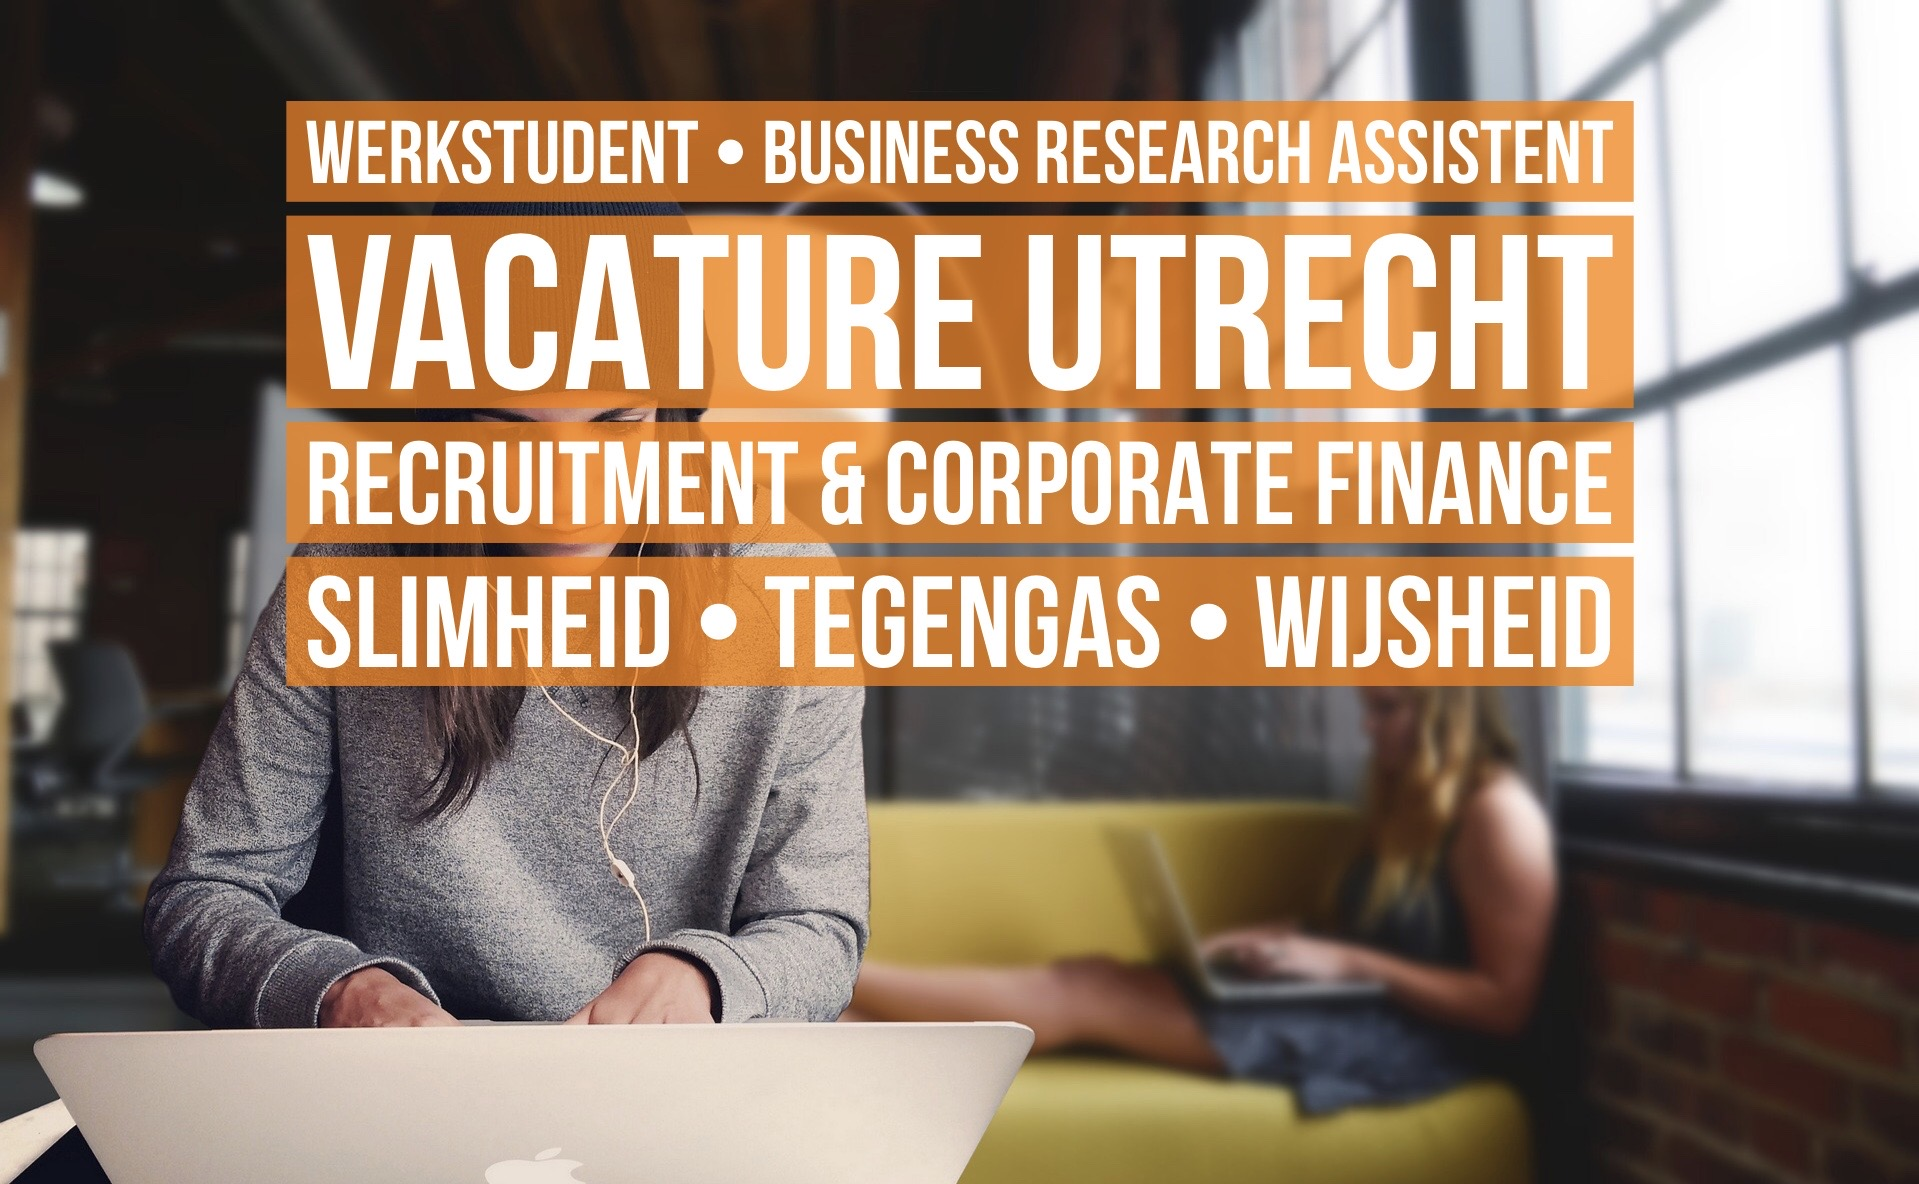 werkstudent business research assistent vacature utrecht recruitment corporate finance slimheid tegengas wijsheid